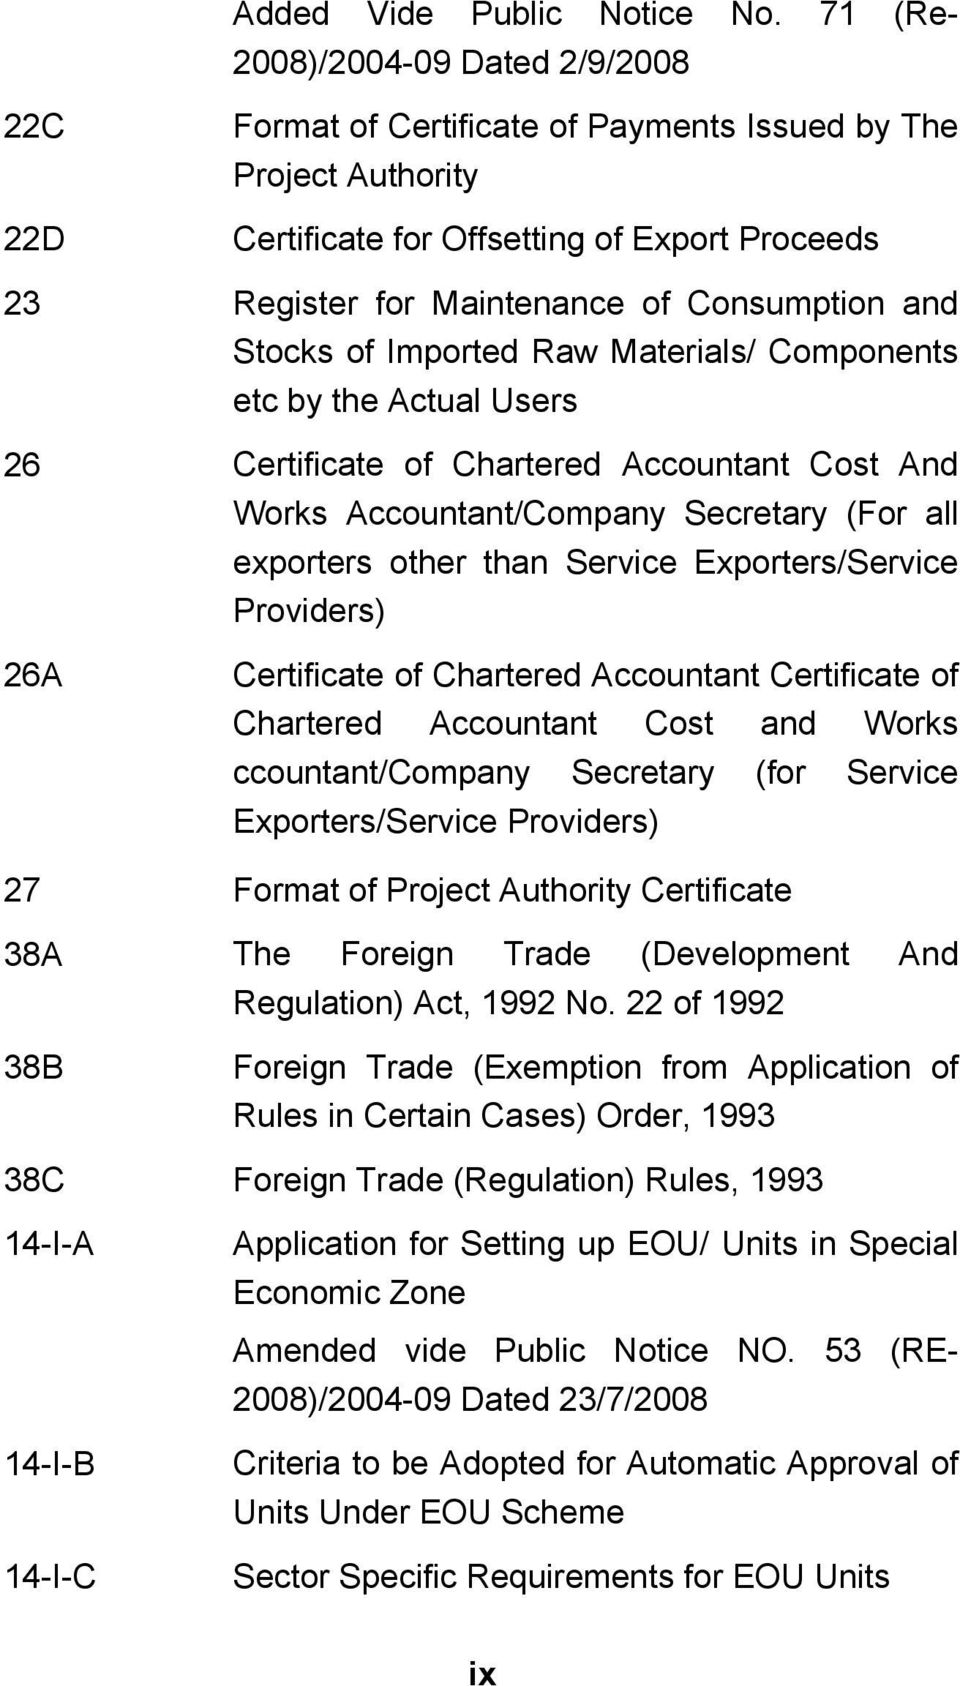 and Stocks of Imported Raw Materials/ Components etc by the Actual Users 26 Certificate of Chartered Accountant Cost And Works Accountant/Company Secretary (For all exporters other than Service